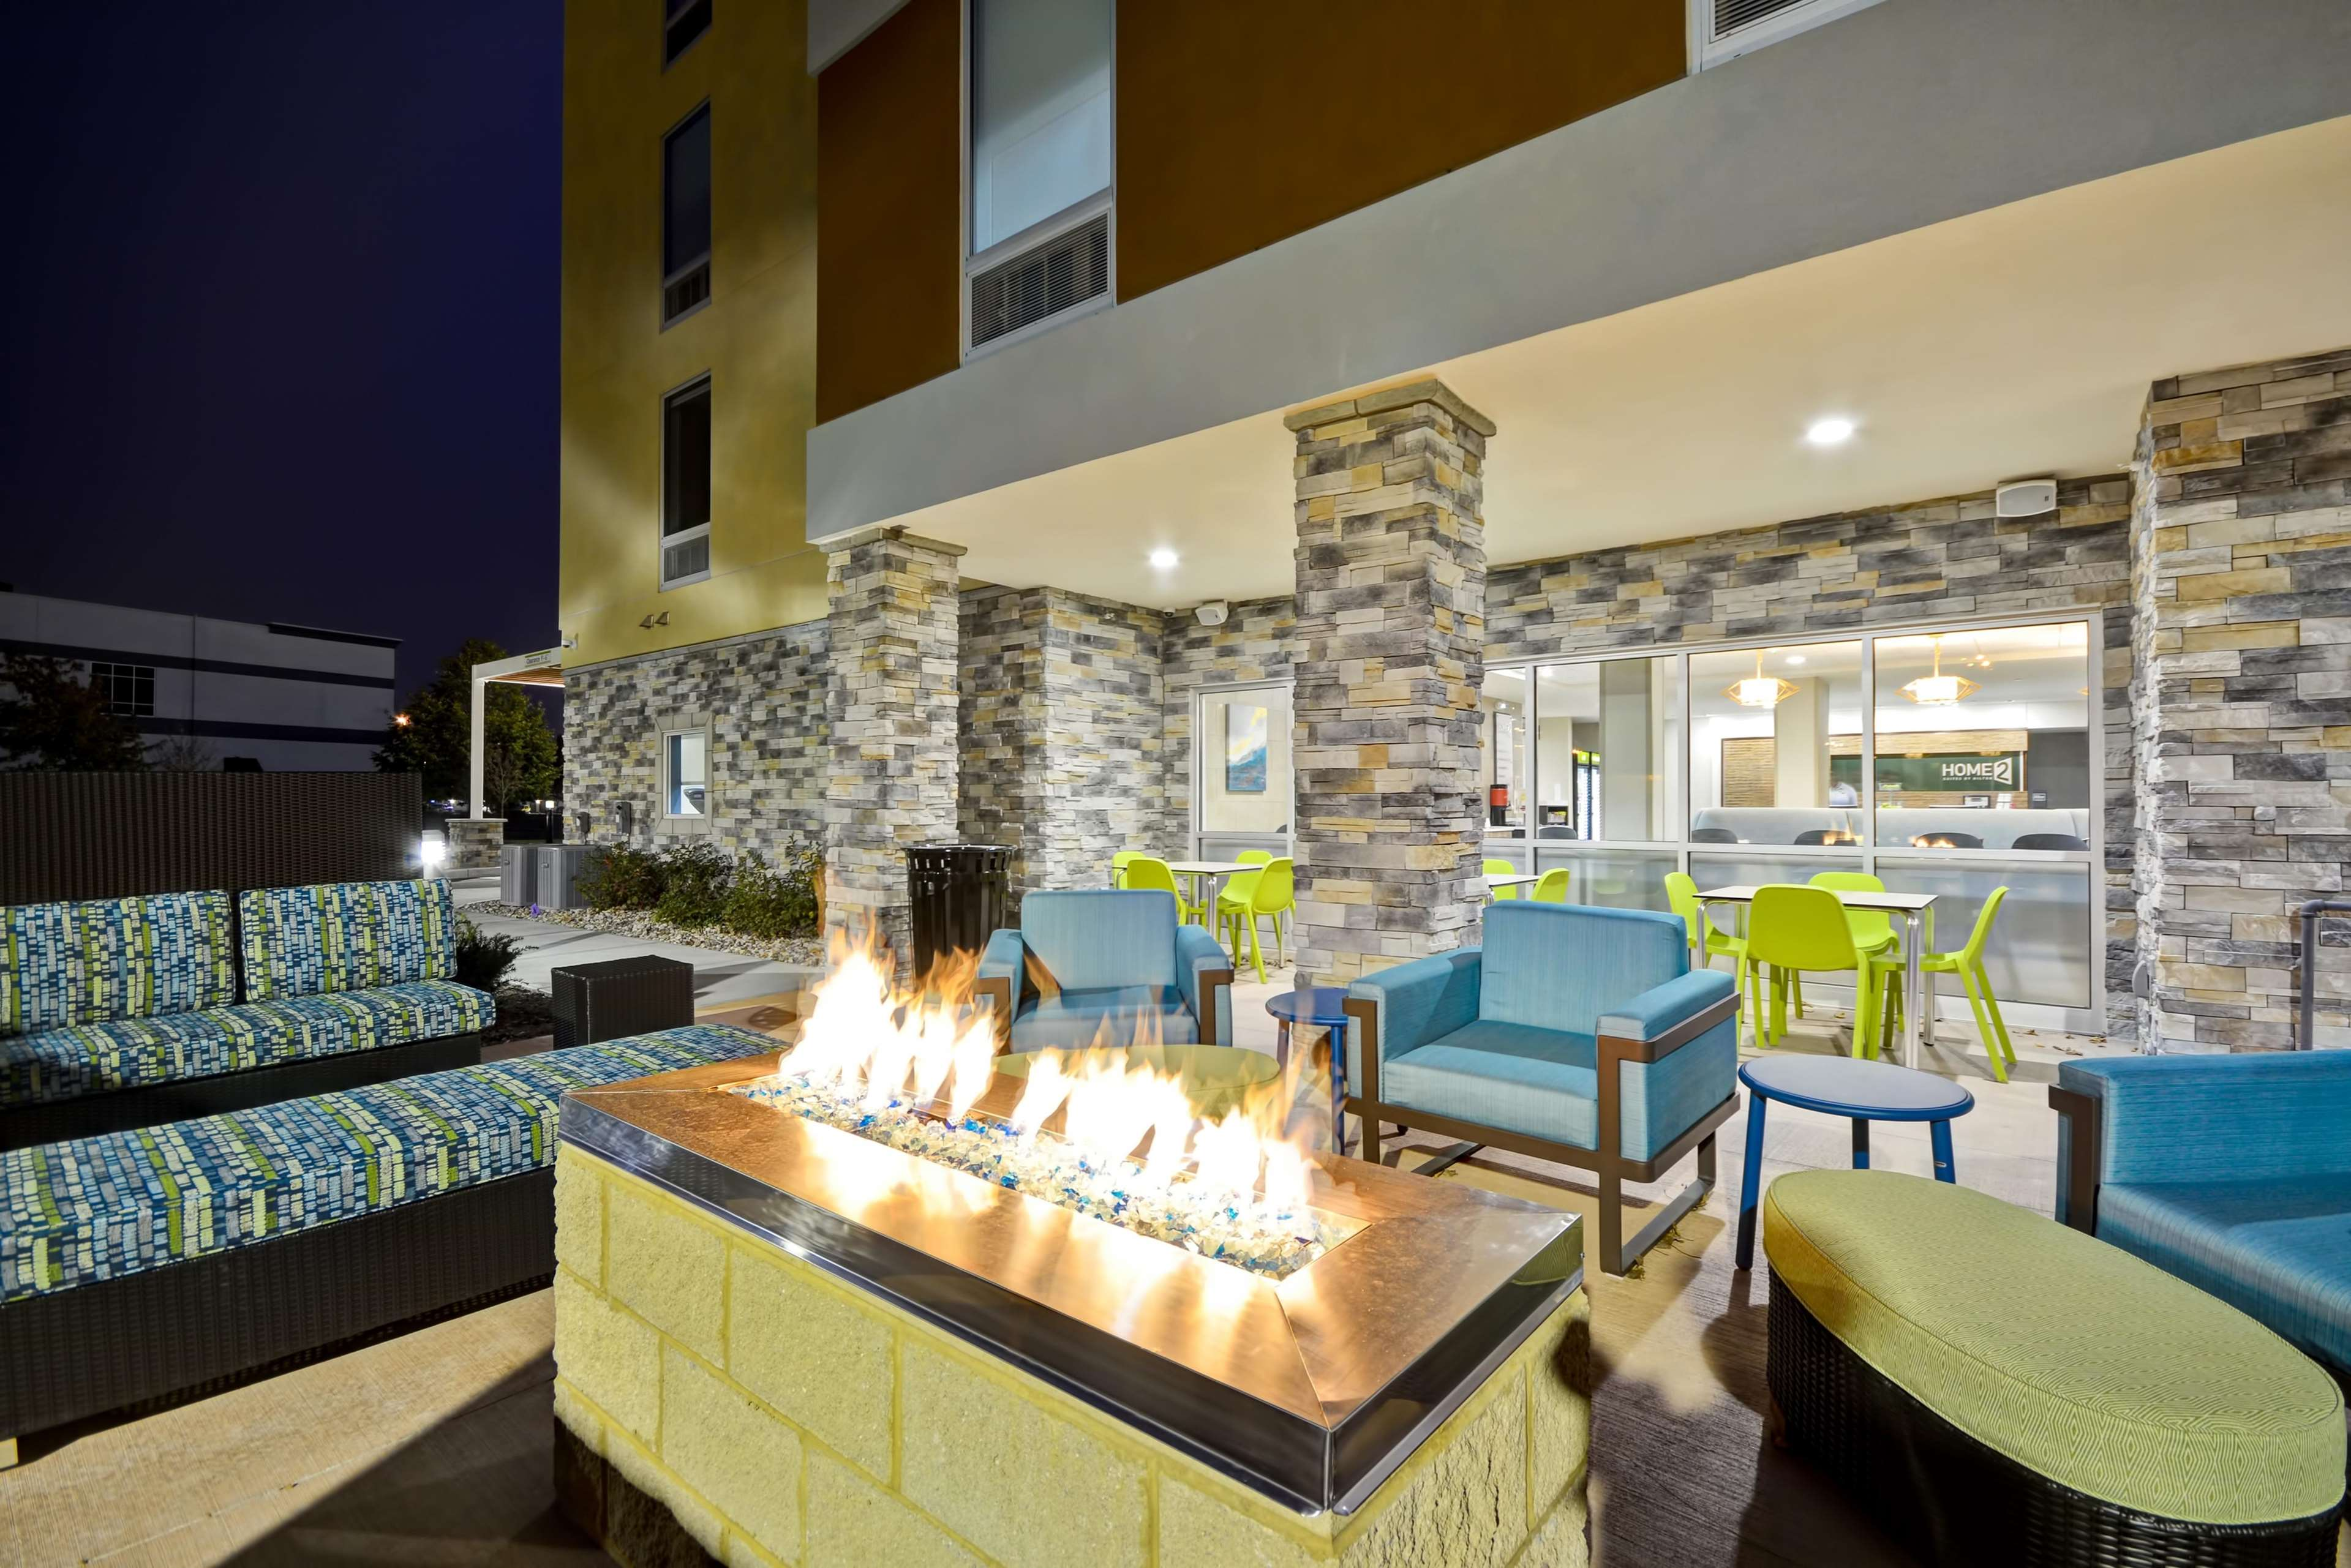 Home2 Suites By Hilton Maumee Toledo image 15